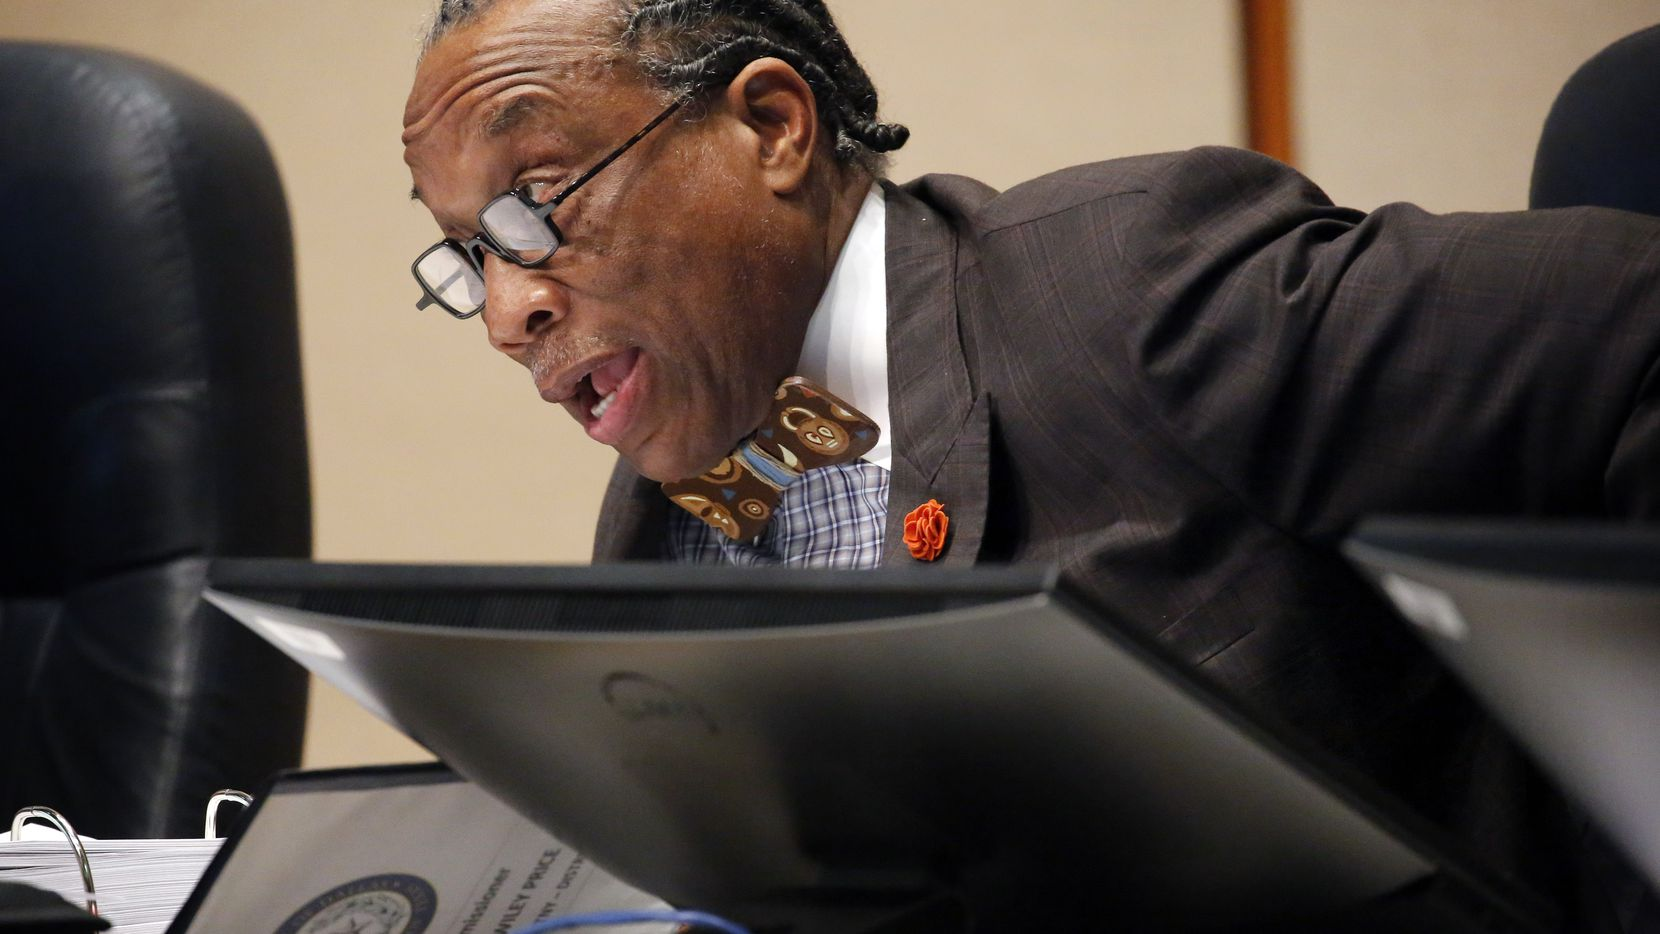 Dallas County Commissioner John Wiley Price of District 3 delivers his remarks during the Dallas County Commissioner Court meeting in Dallas, Tuesday, February 4, 2020. (Tom Fox/The Dallas Morning News)